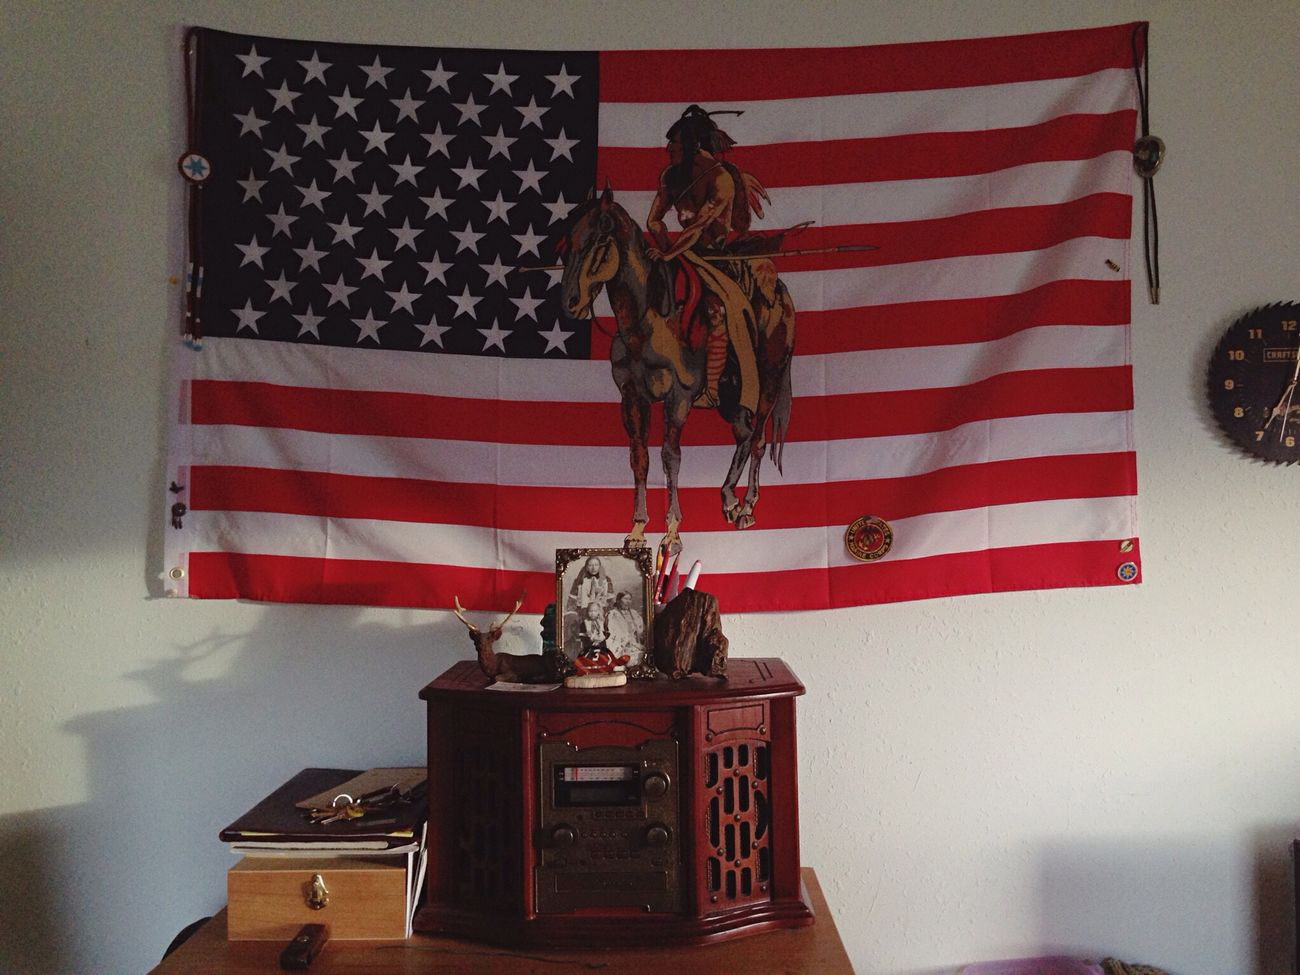 grandpas man cave Recordplayer Flag Chillspot